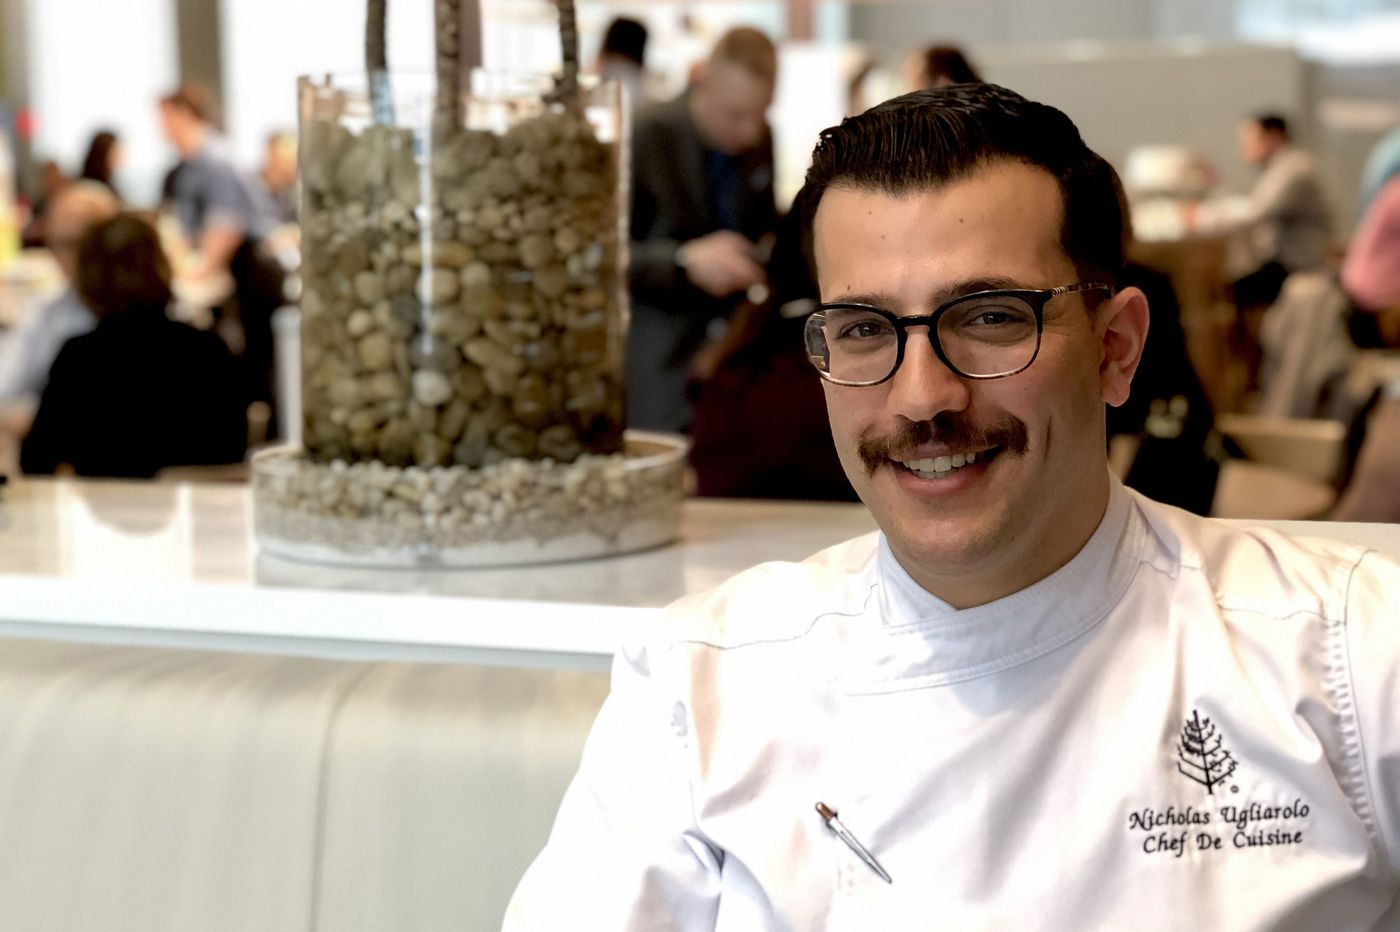 The chef at Jean-Georges' new Comcast tower restaurant in Philly has his head in the clouds